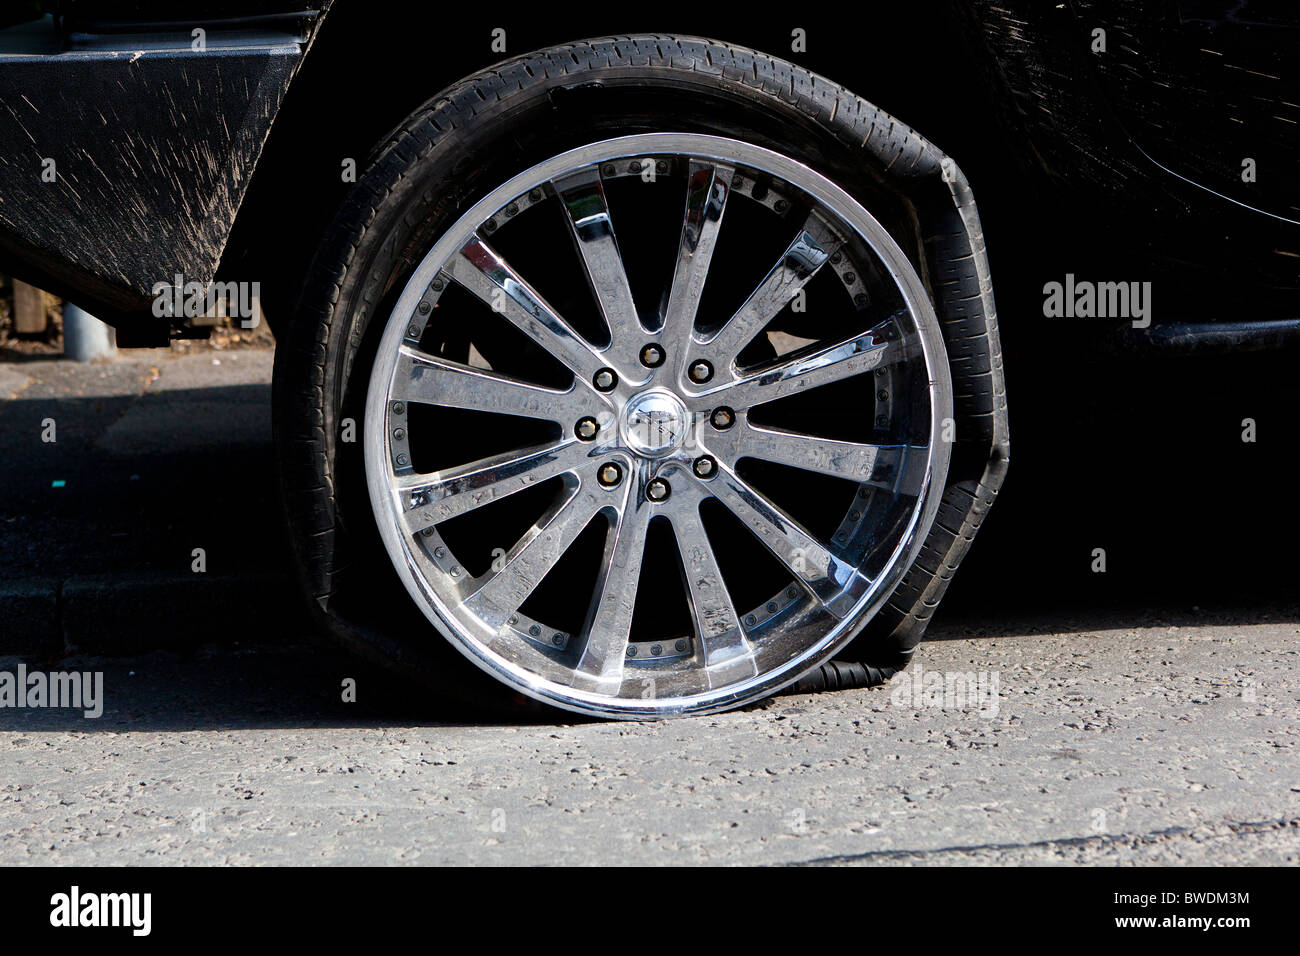 Flat Tyre on Hummer - Stock Image